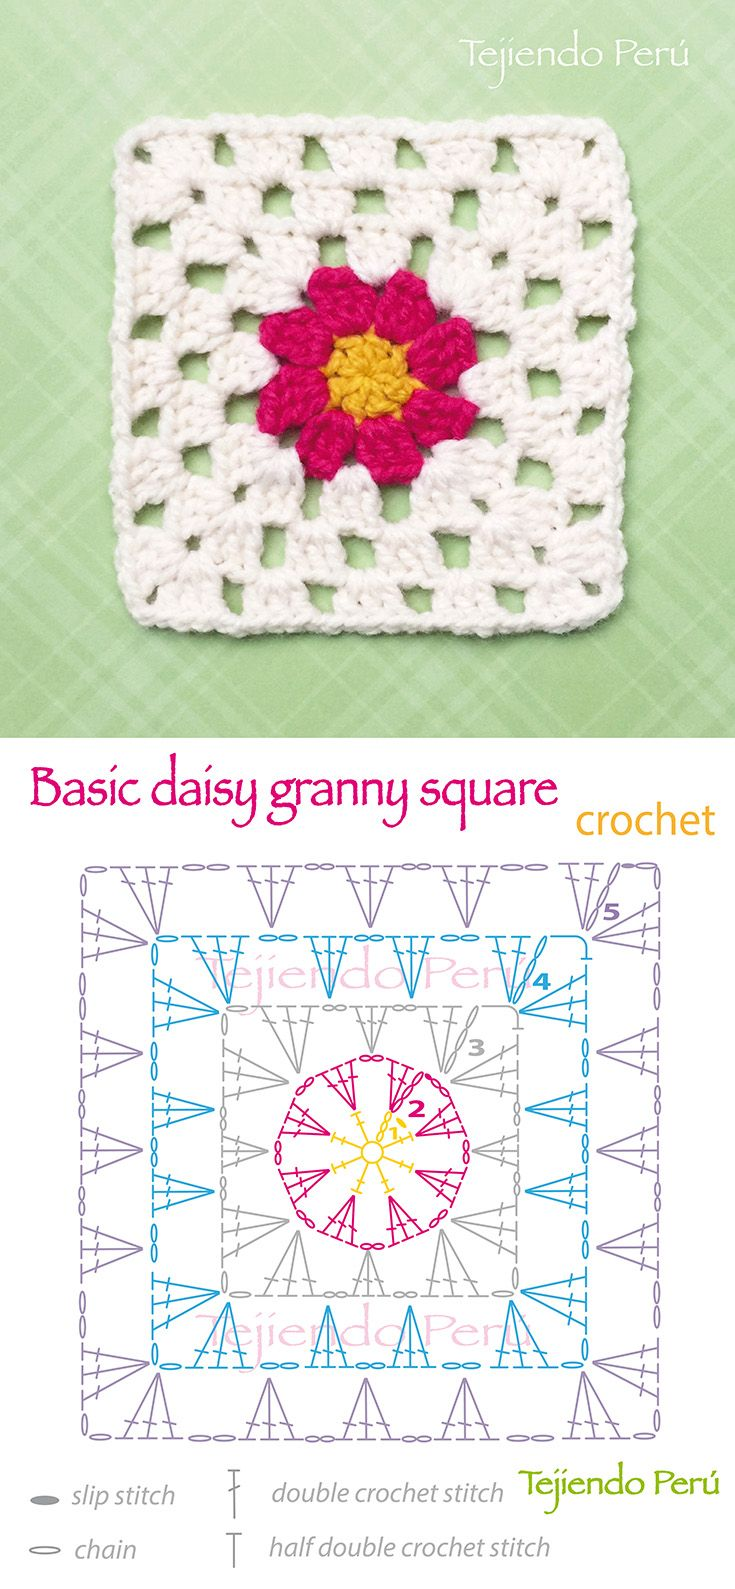 Crochet: basic daisy granny square pattern (diagram or chart ...